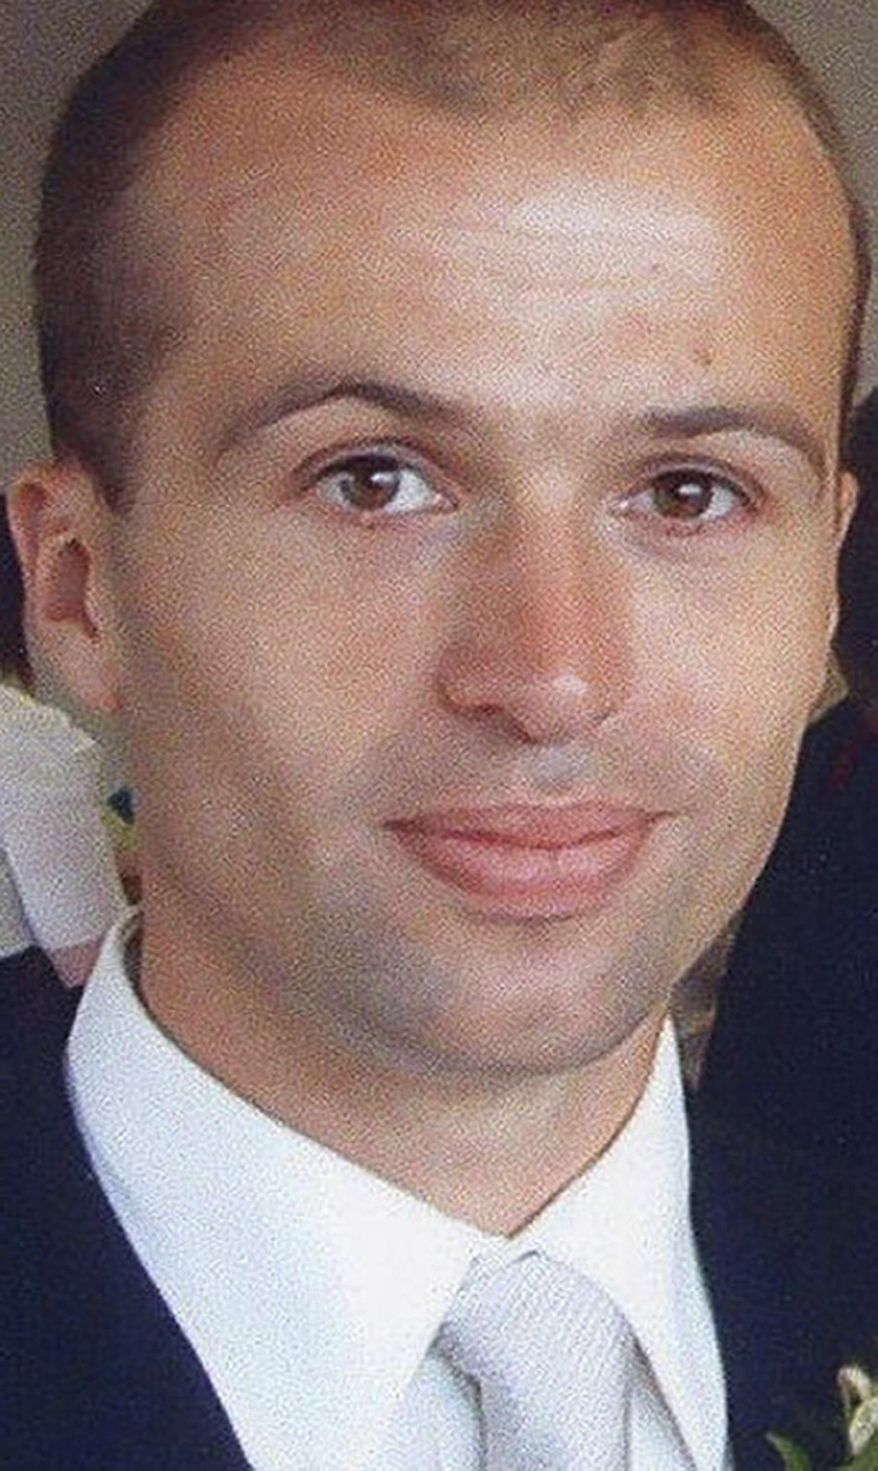 British intelligence official Gareth Williams worked for the United Kingdom's secret eavesdropping service, GCHQ, but was attached to the country's MI6 overseas spy agency when his naked and decomposing remains were found in 2010 at his central London apartment. Scotland Yard said on Wednesday, Nov. 13, 2013, that Williams likely died in an accident with no one else involved. (AP Photo/Metropolitan Police)